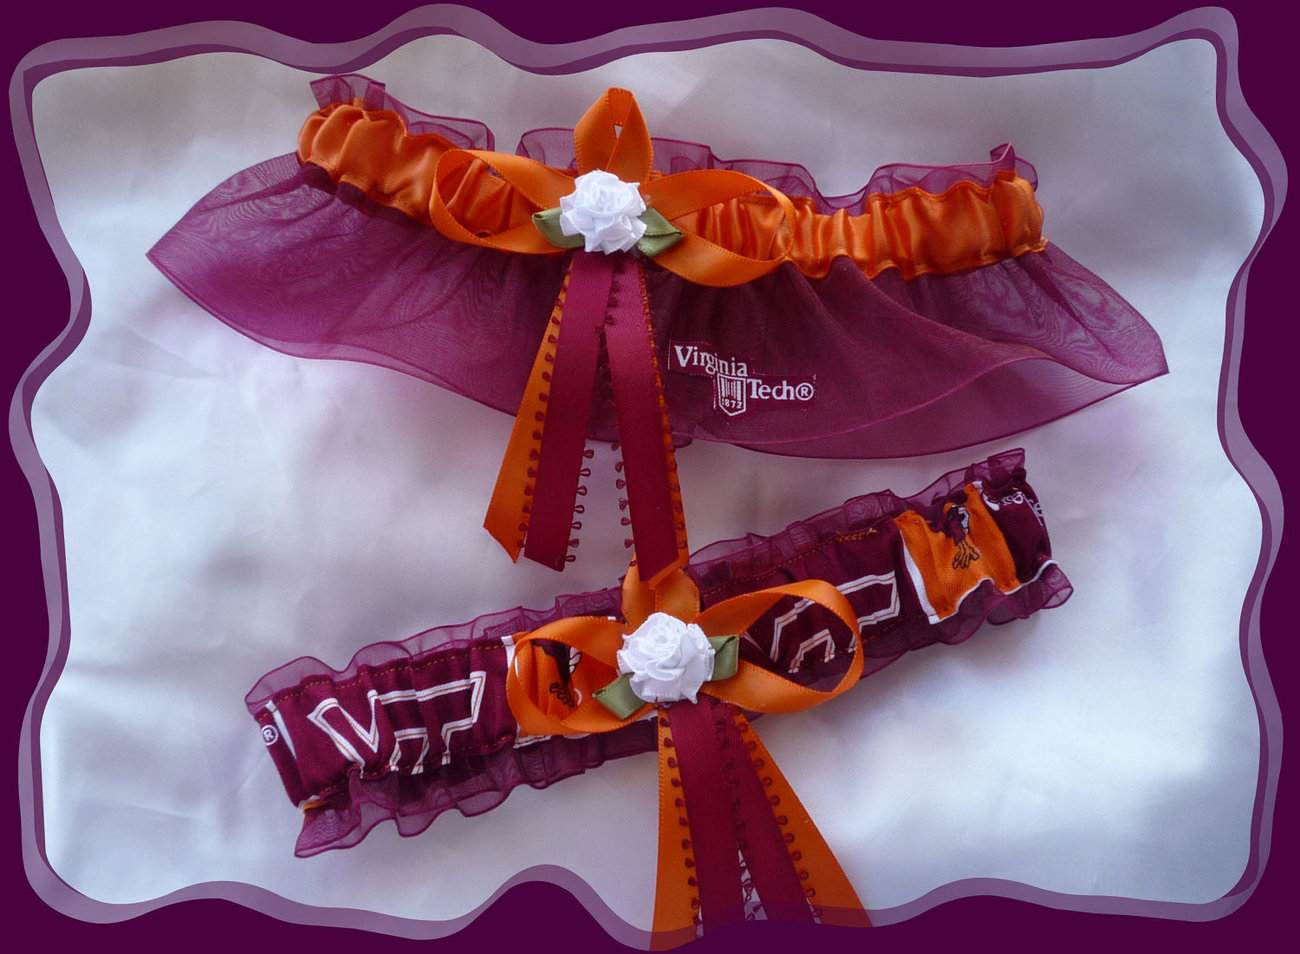 Virginia Tech Garnet Organza Fabric Flower Wedding Set